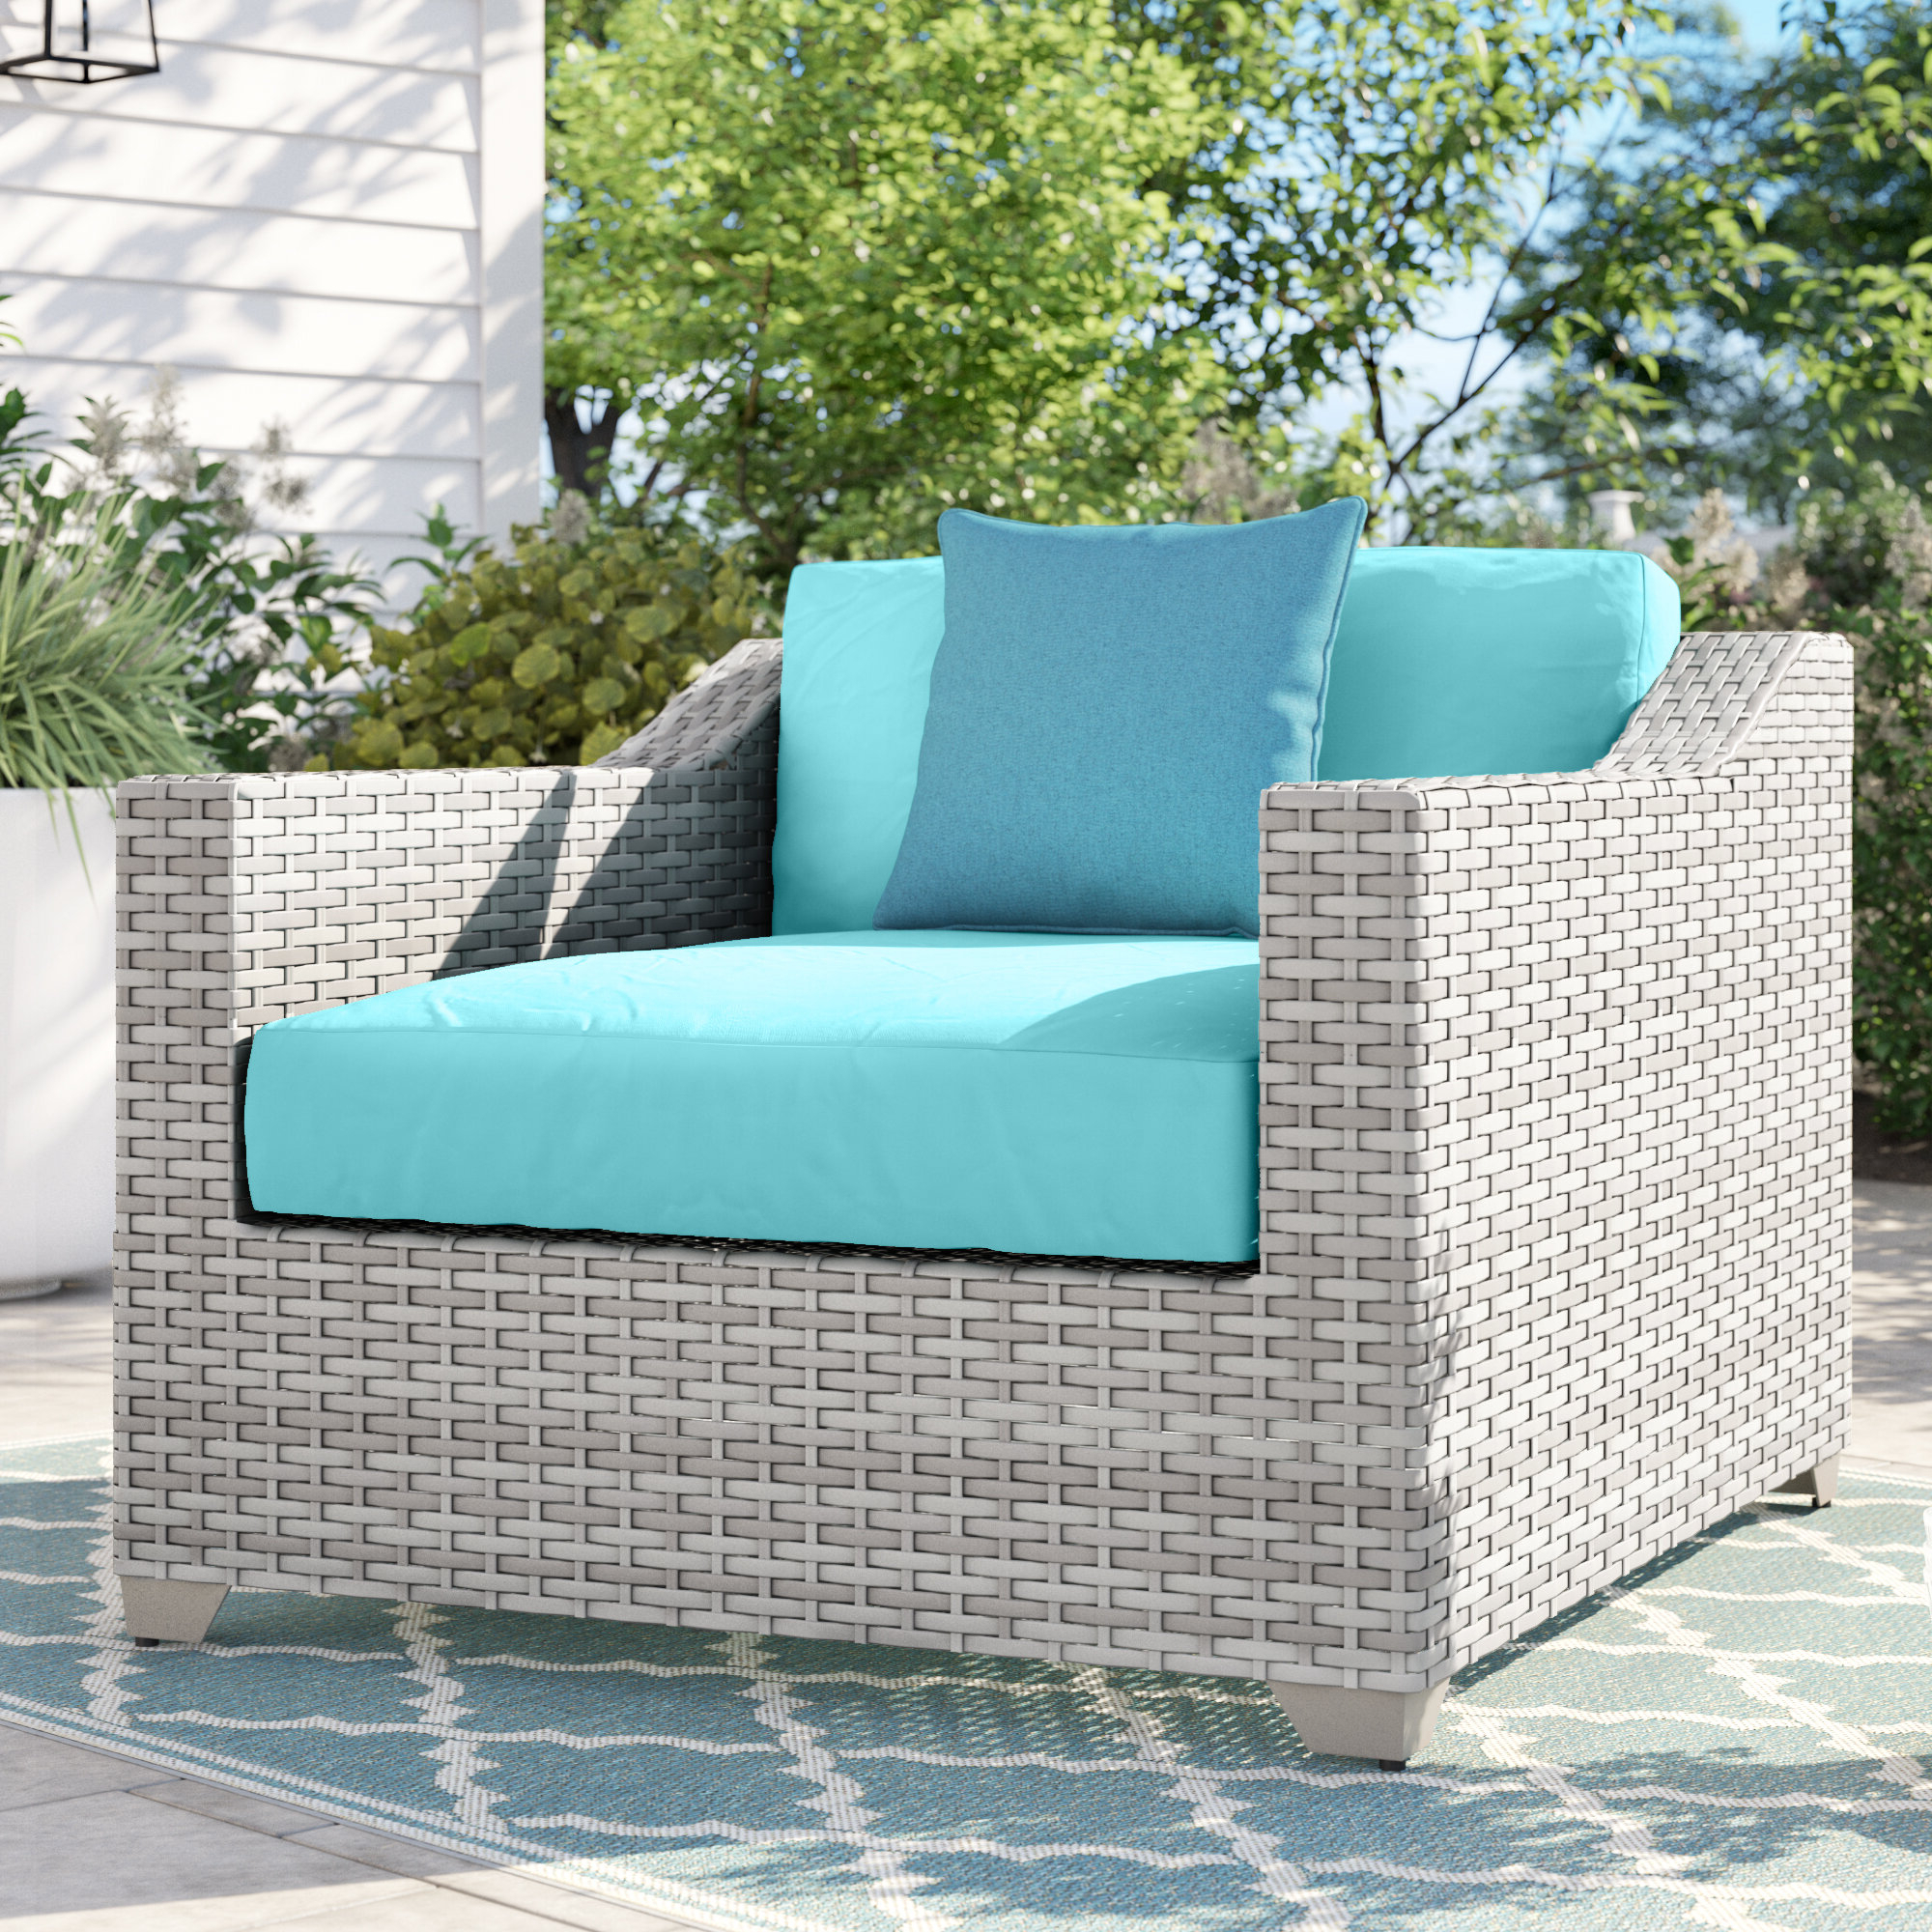 Well Known Patio Sofas With Cushions Within Sol 72 Outdoor Falmouth Patio Chair With Cushions & Reviews (View 20 of 20)